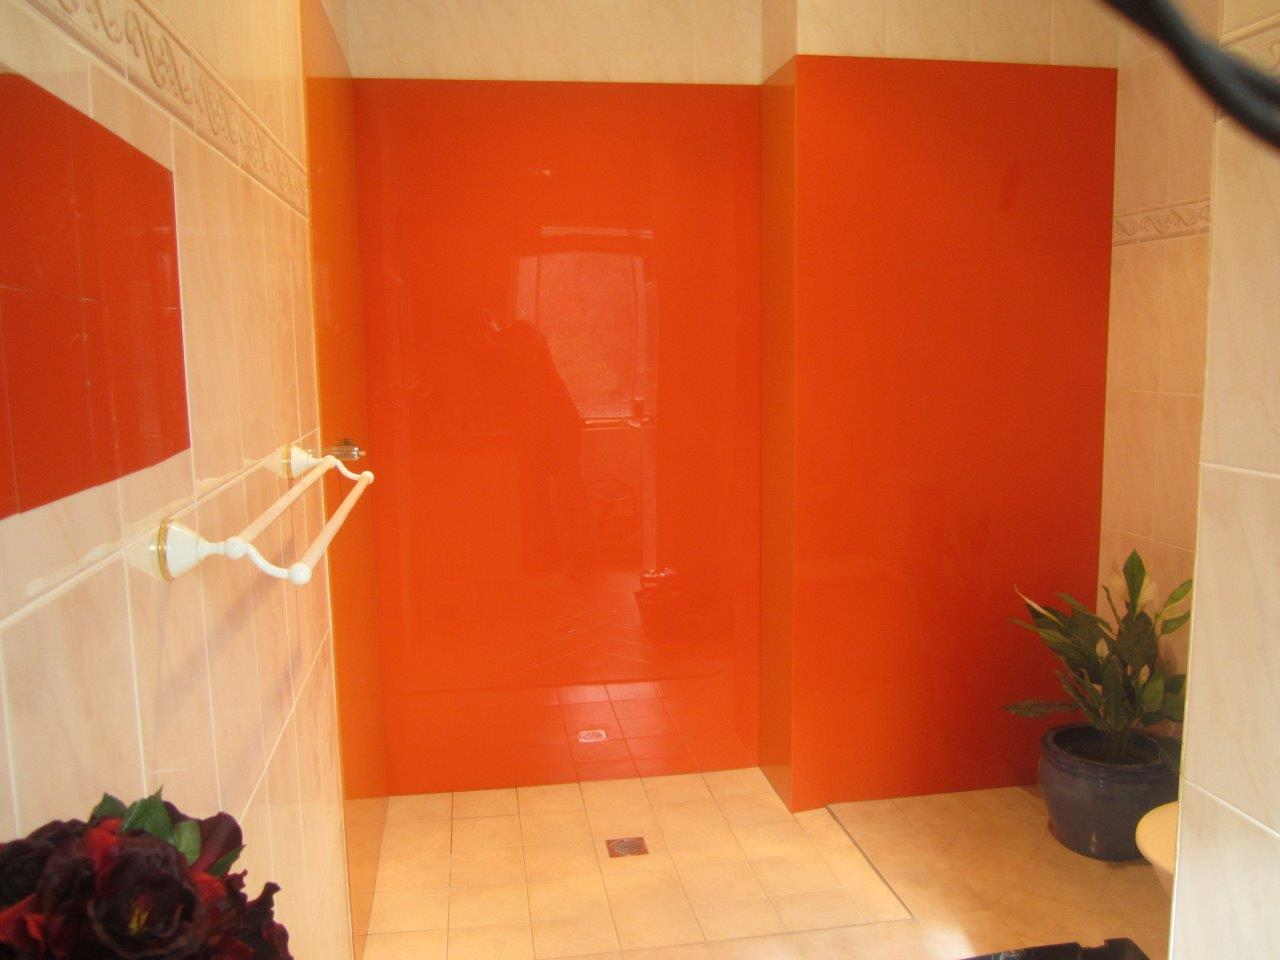 Acrylic Splashbacks For Showers And Bathrooms